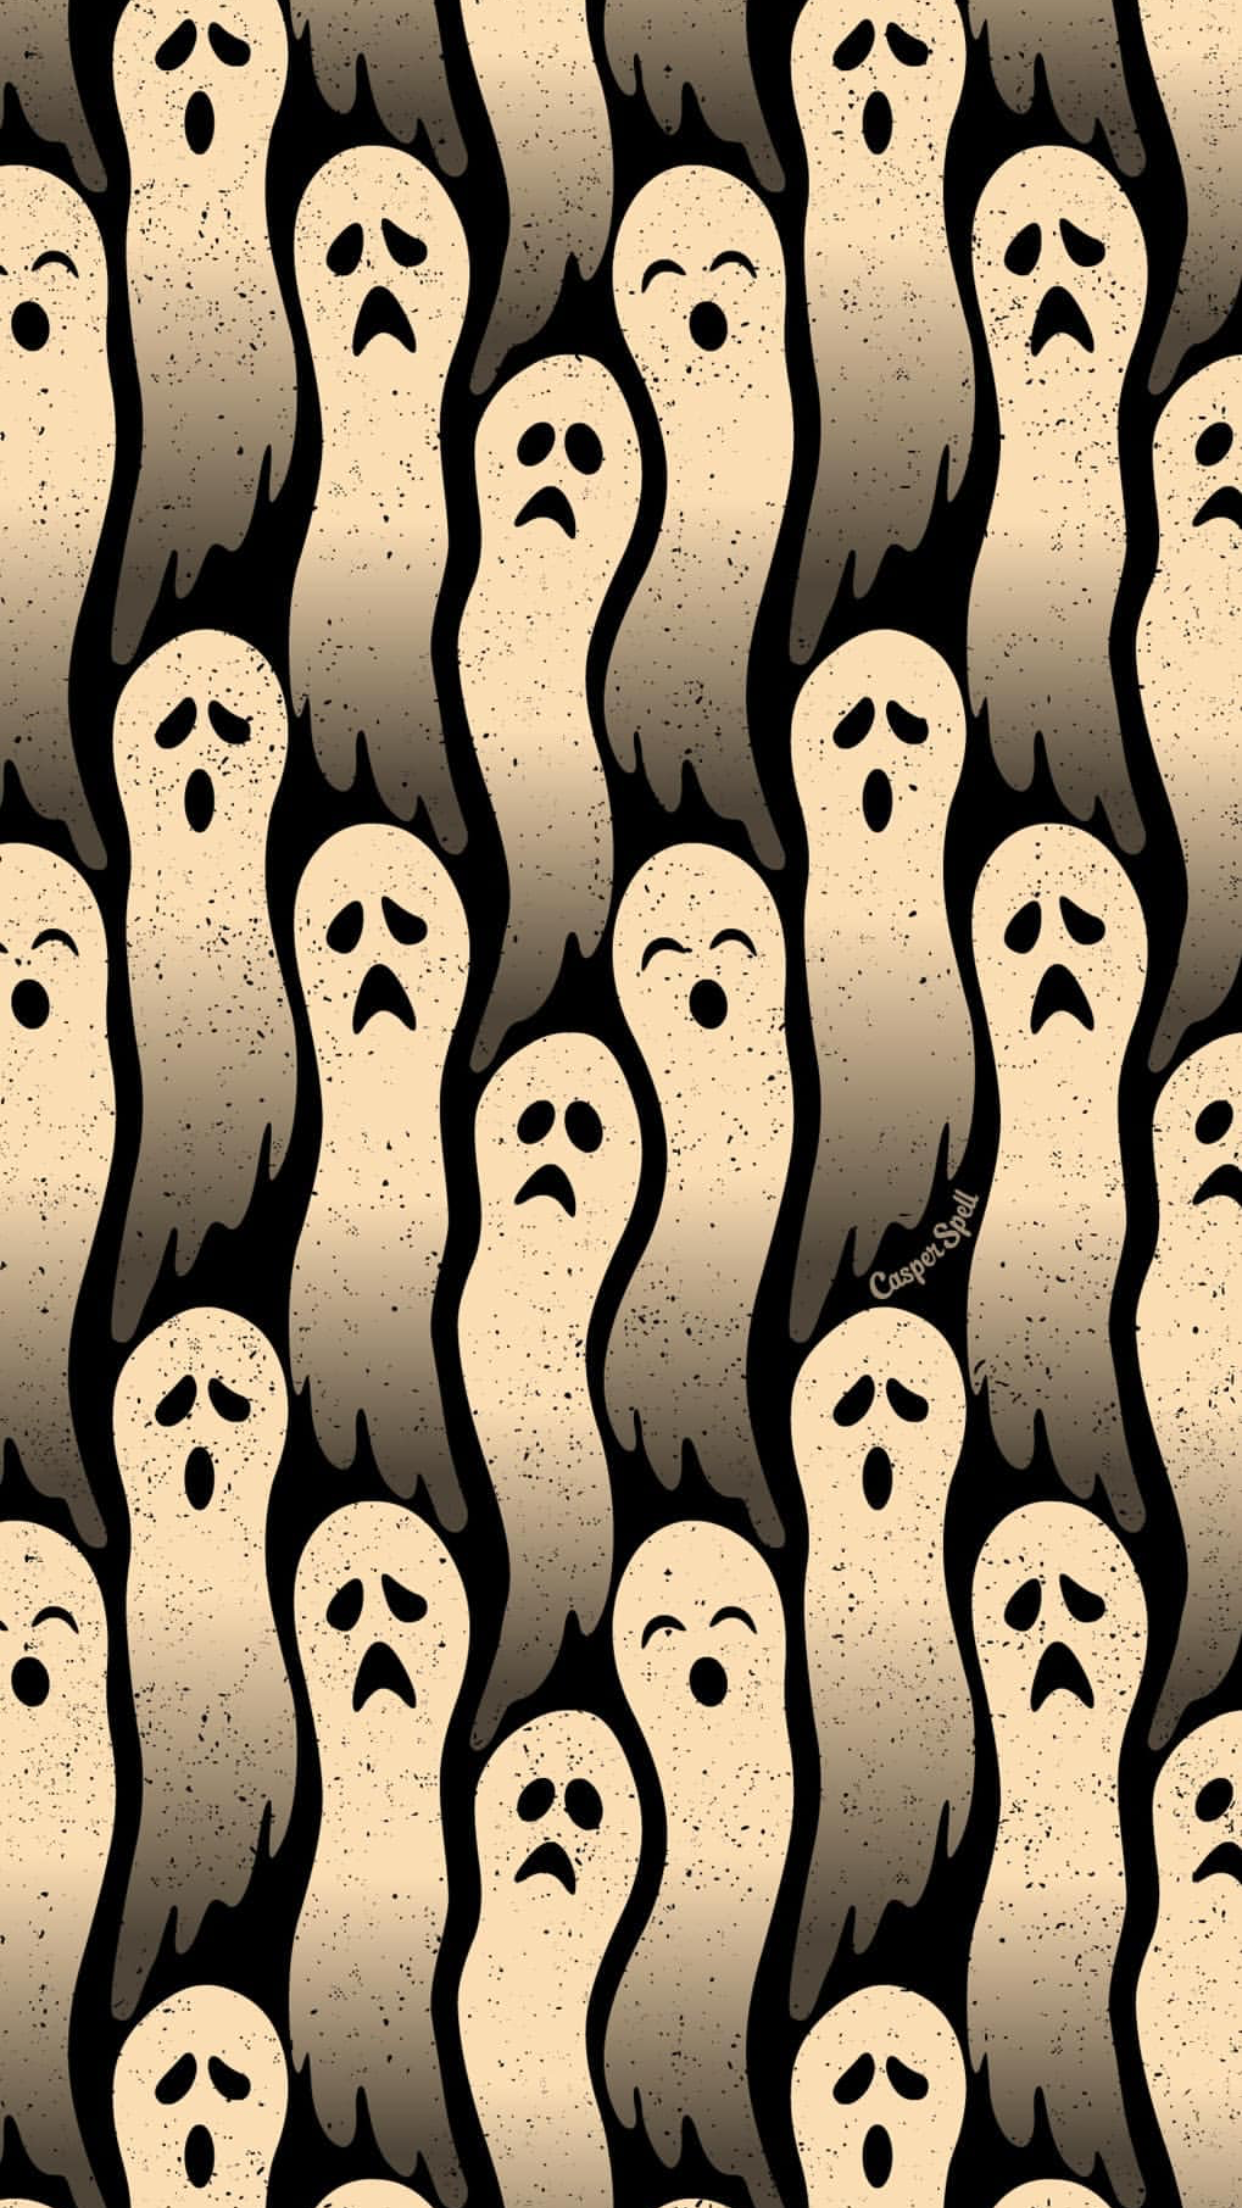 Ghosts By Artist Casper Spell Wallpaper Lock Screen Background For Android Cellphone Iphone Via I Halloween Art Halloween Wallpaper Halloween Wallpaper Iphone